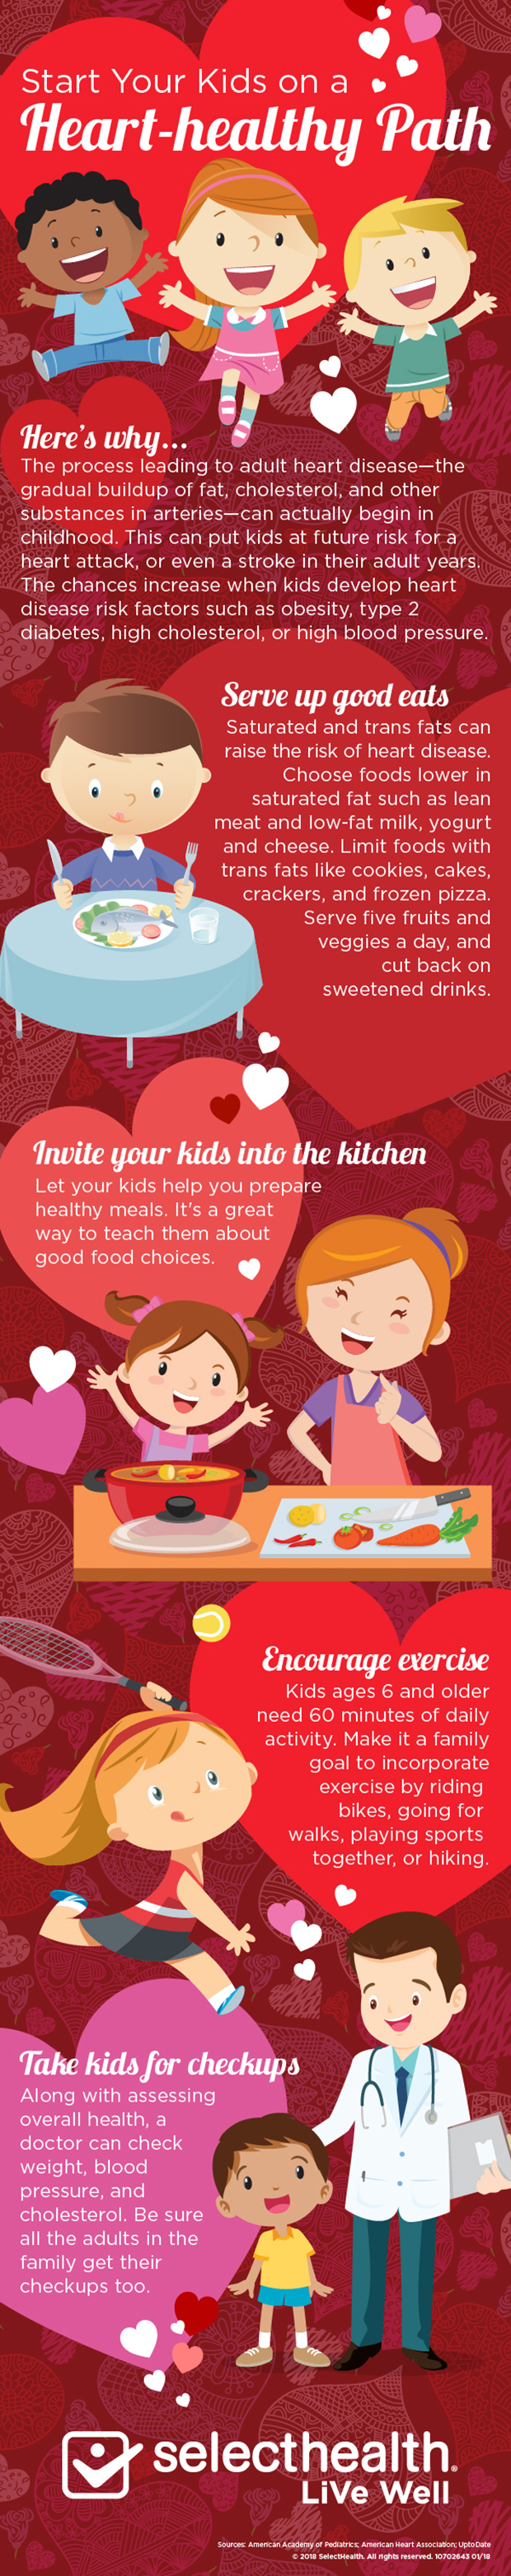 Keep kids heart healthy, and avoid heart disease. Heart Health Infographic